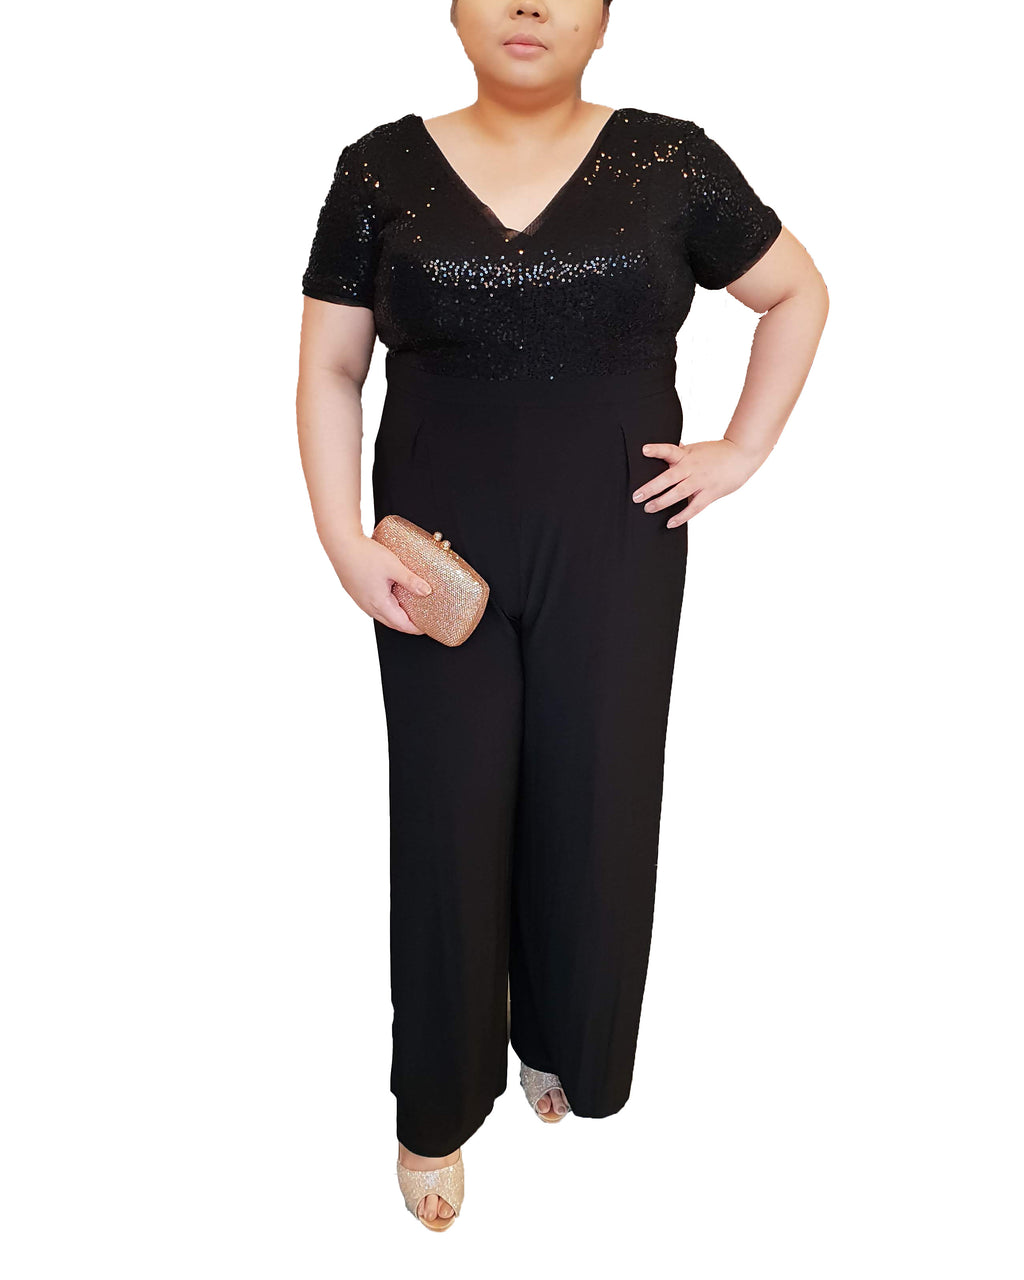 V-Neck Black Sequin Jumpsuit